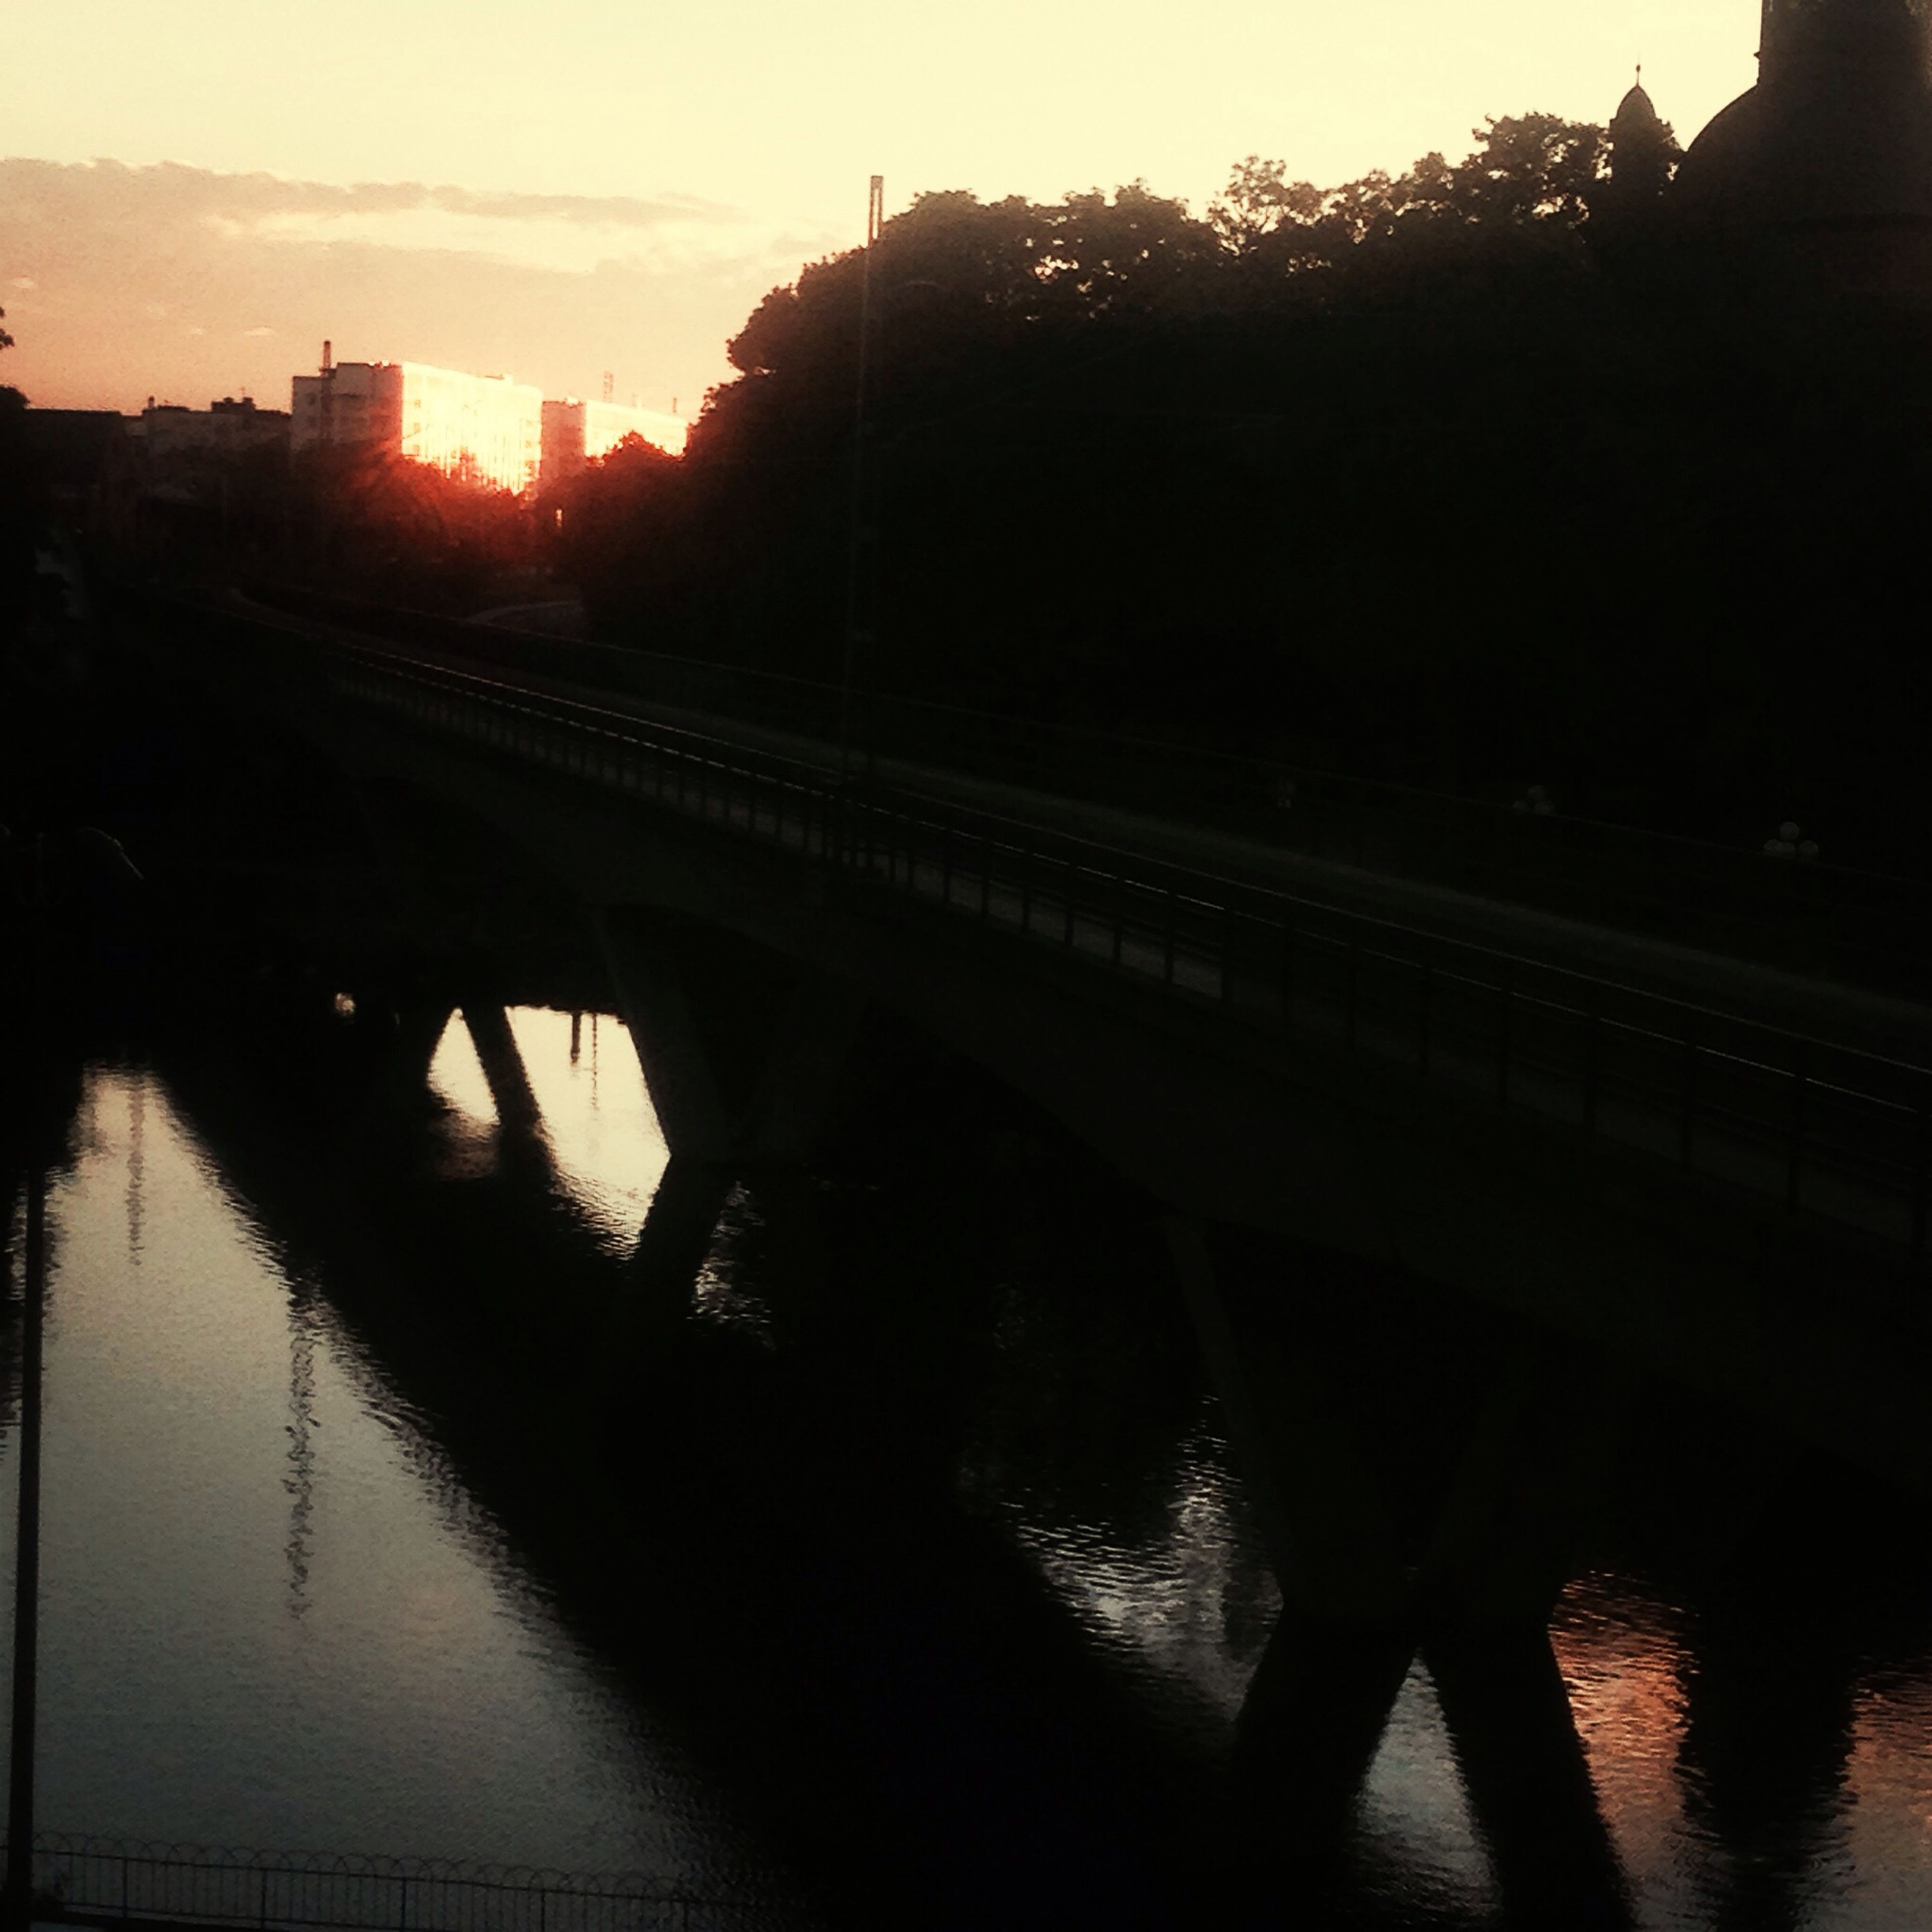 transportation, water, built structure, architecture, connection, river, bridge - man made structure, sunset, silhouette, reflection, sky, bridge, tree, canal, building exterior, dusk, railroad track, mode of transport, outdoors, waterfront